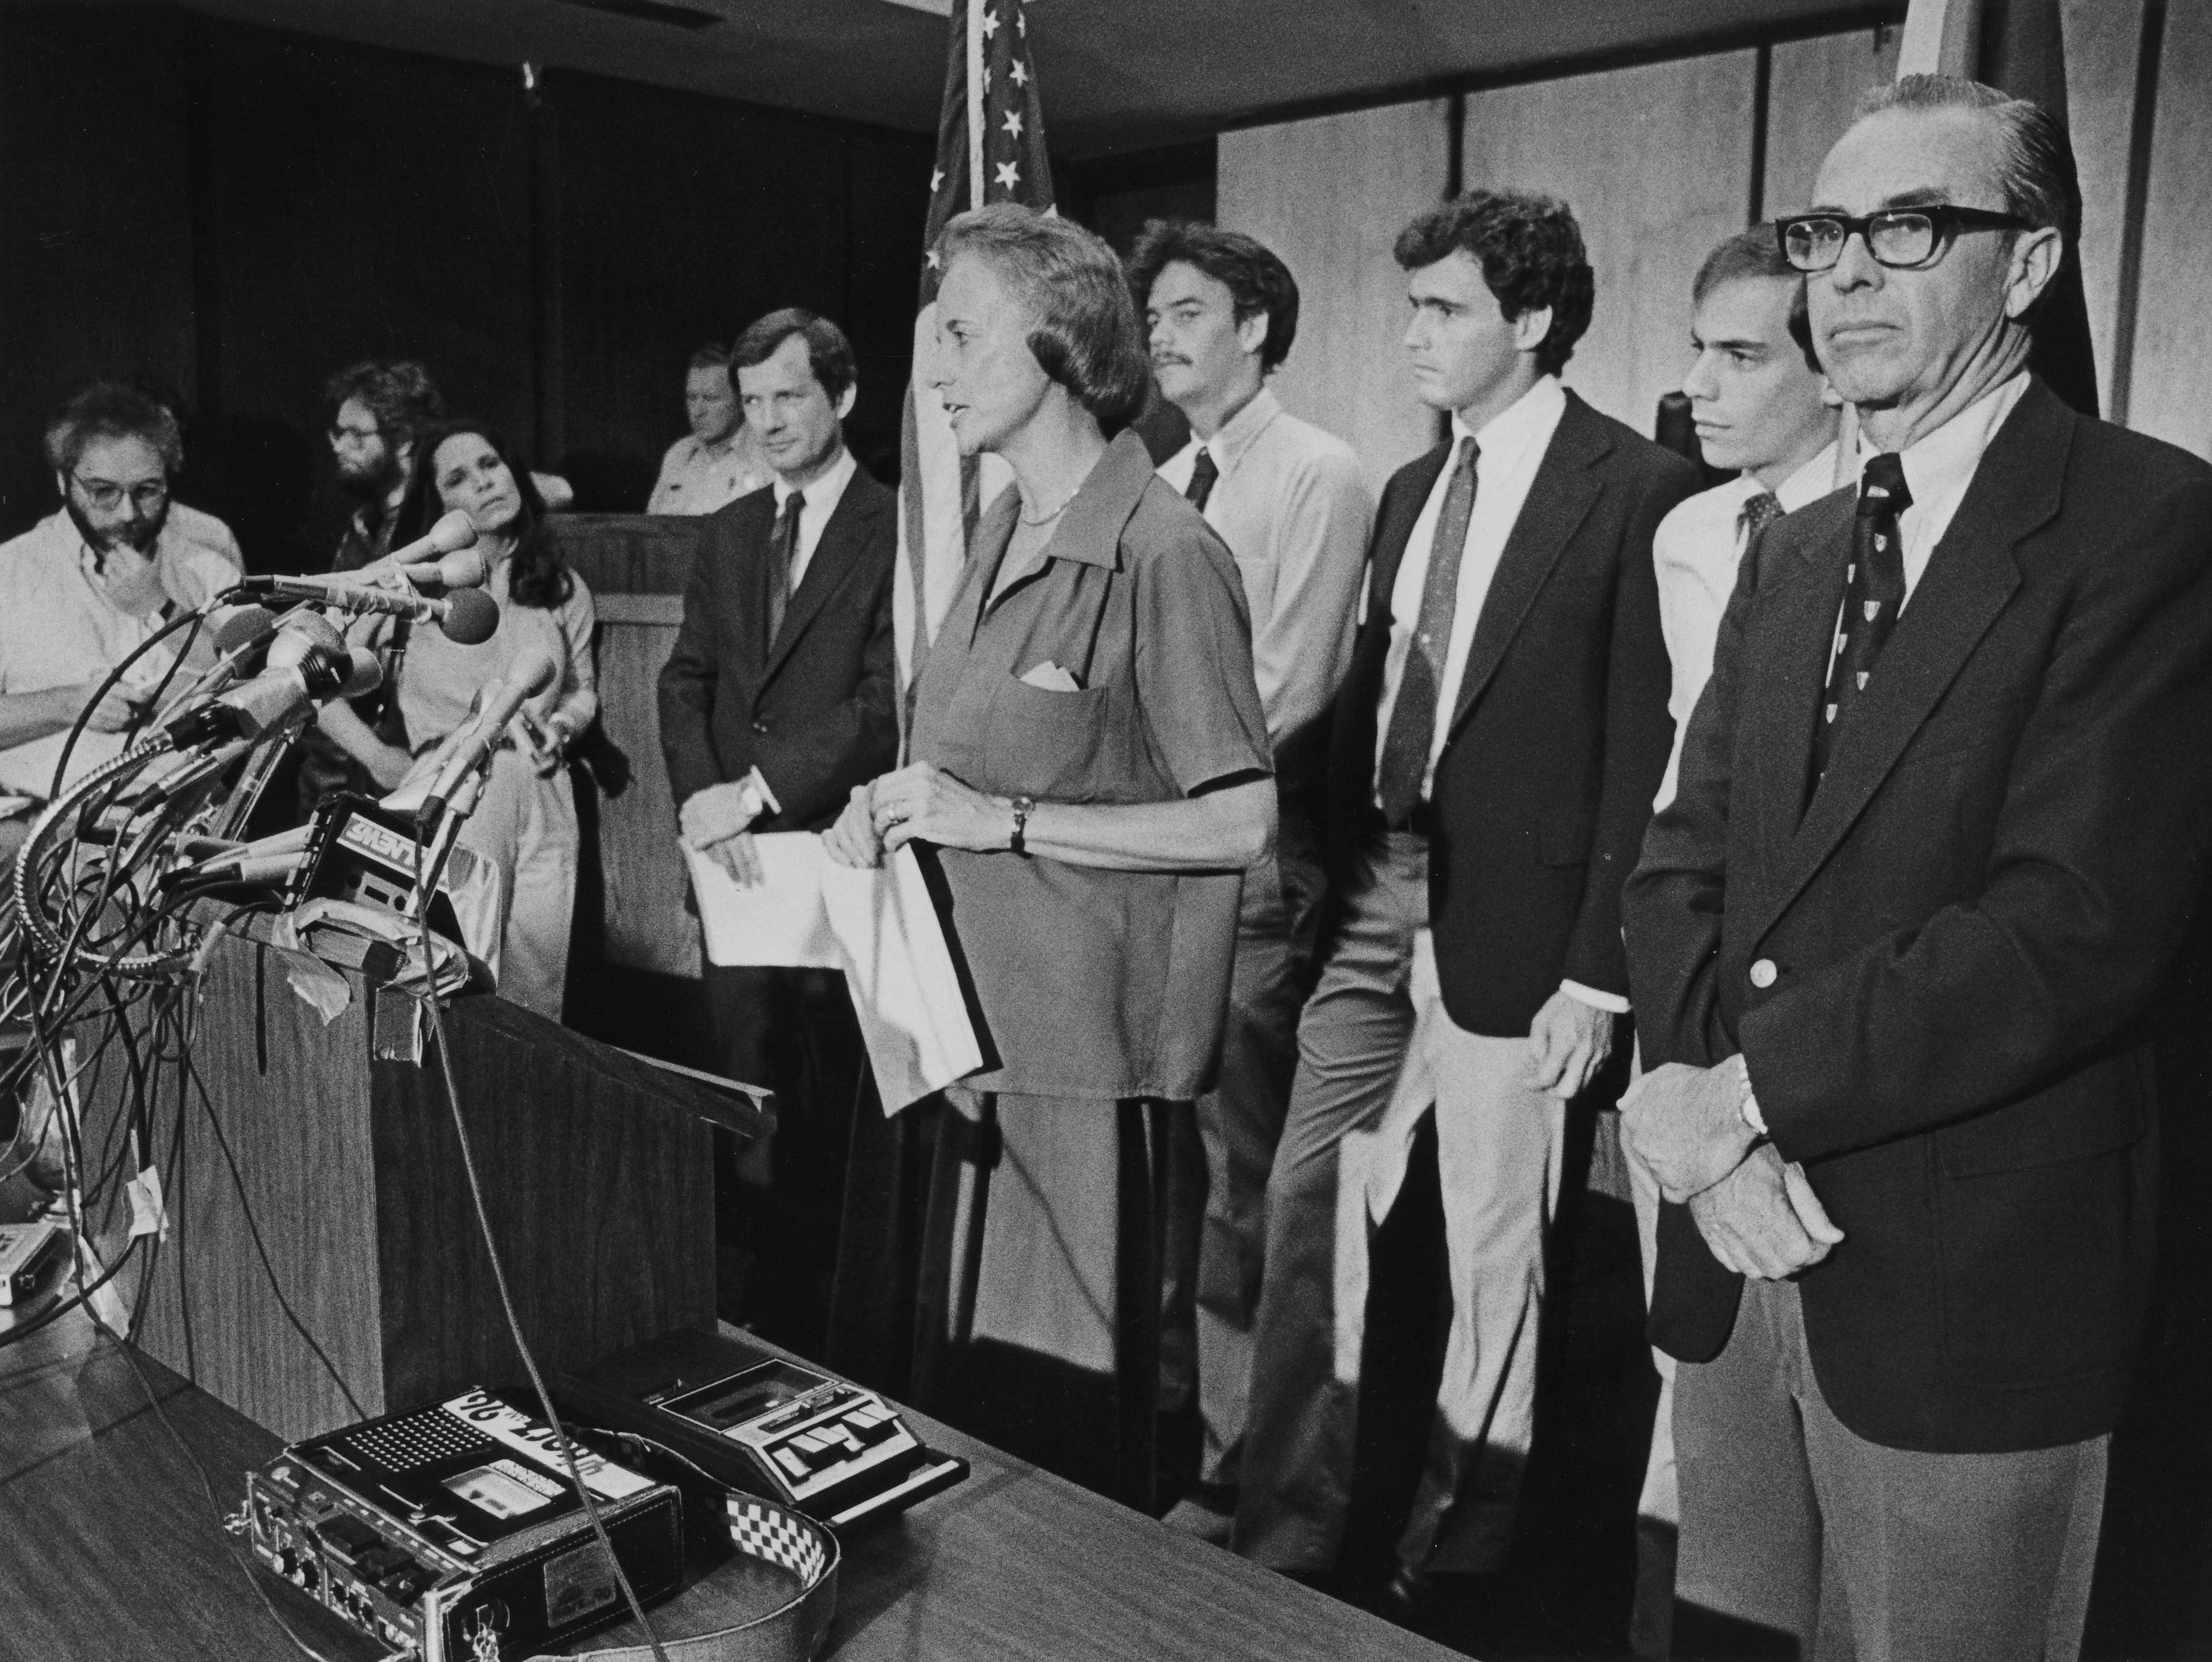 John Jay O'Connor (far right) stands with sons (from left) Brian, Scott and Jay while his wife,  Sandra, fields questions at a news conference on July 7, 1981. O' Connor said the family really hasn't had time to think about future plans.